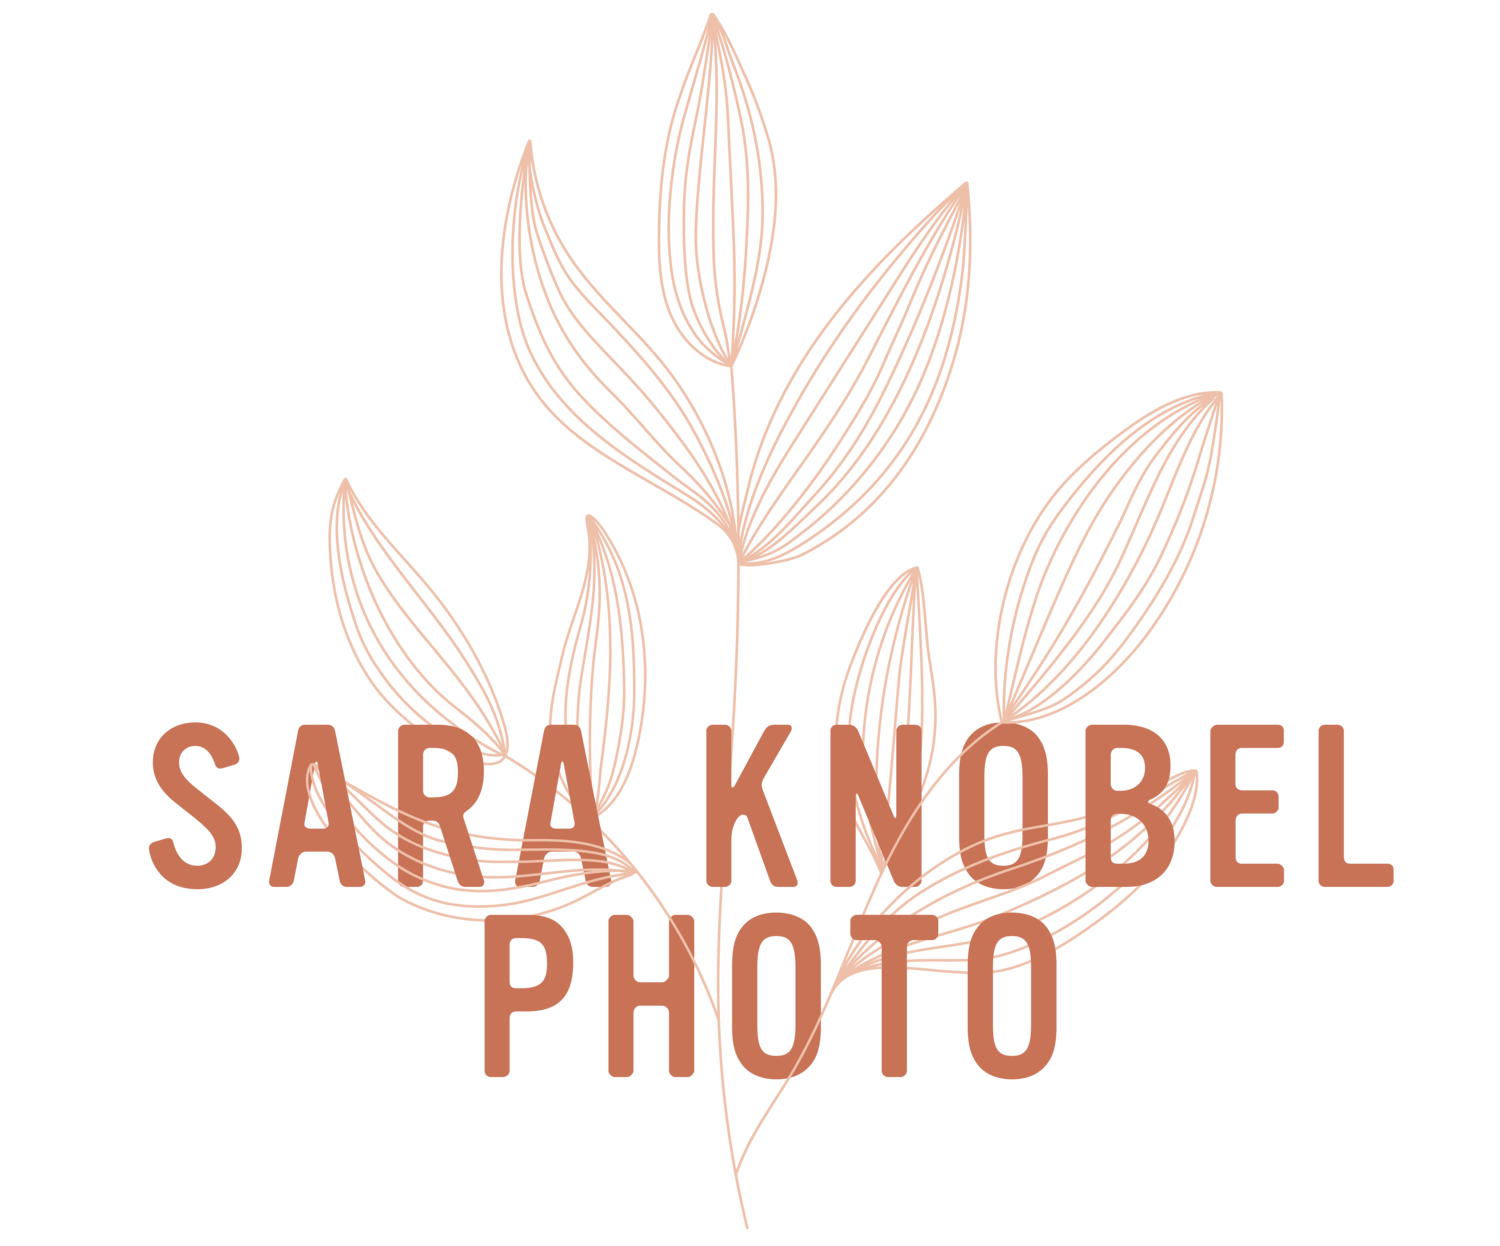 Sara Knobel Photo